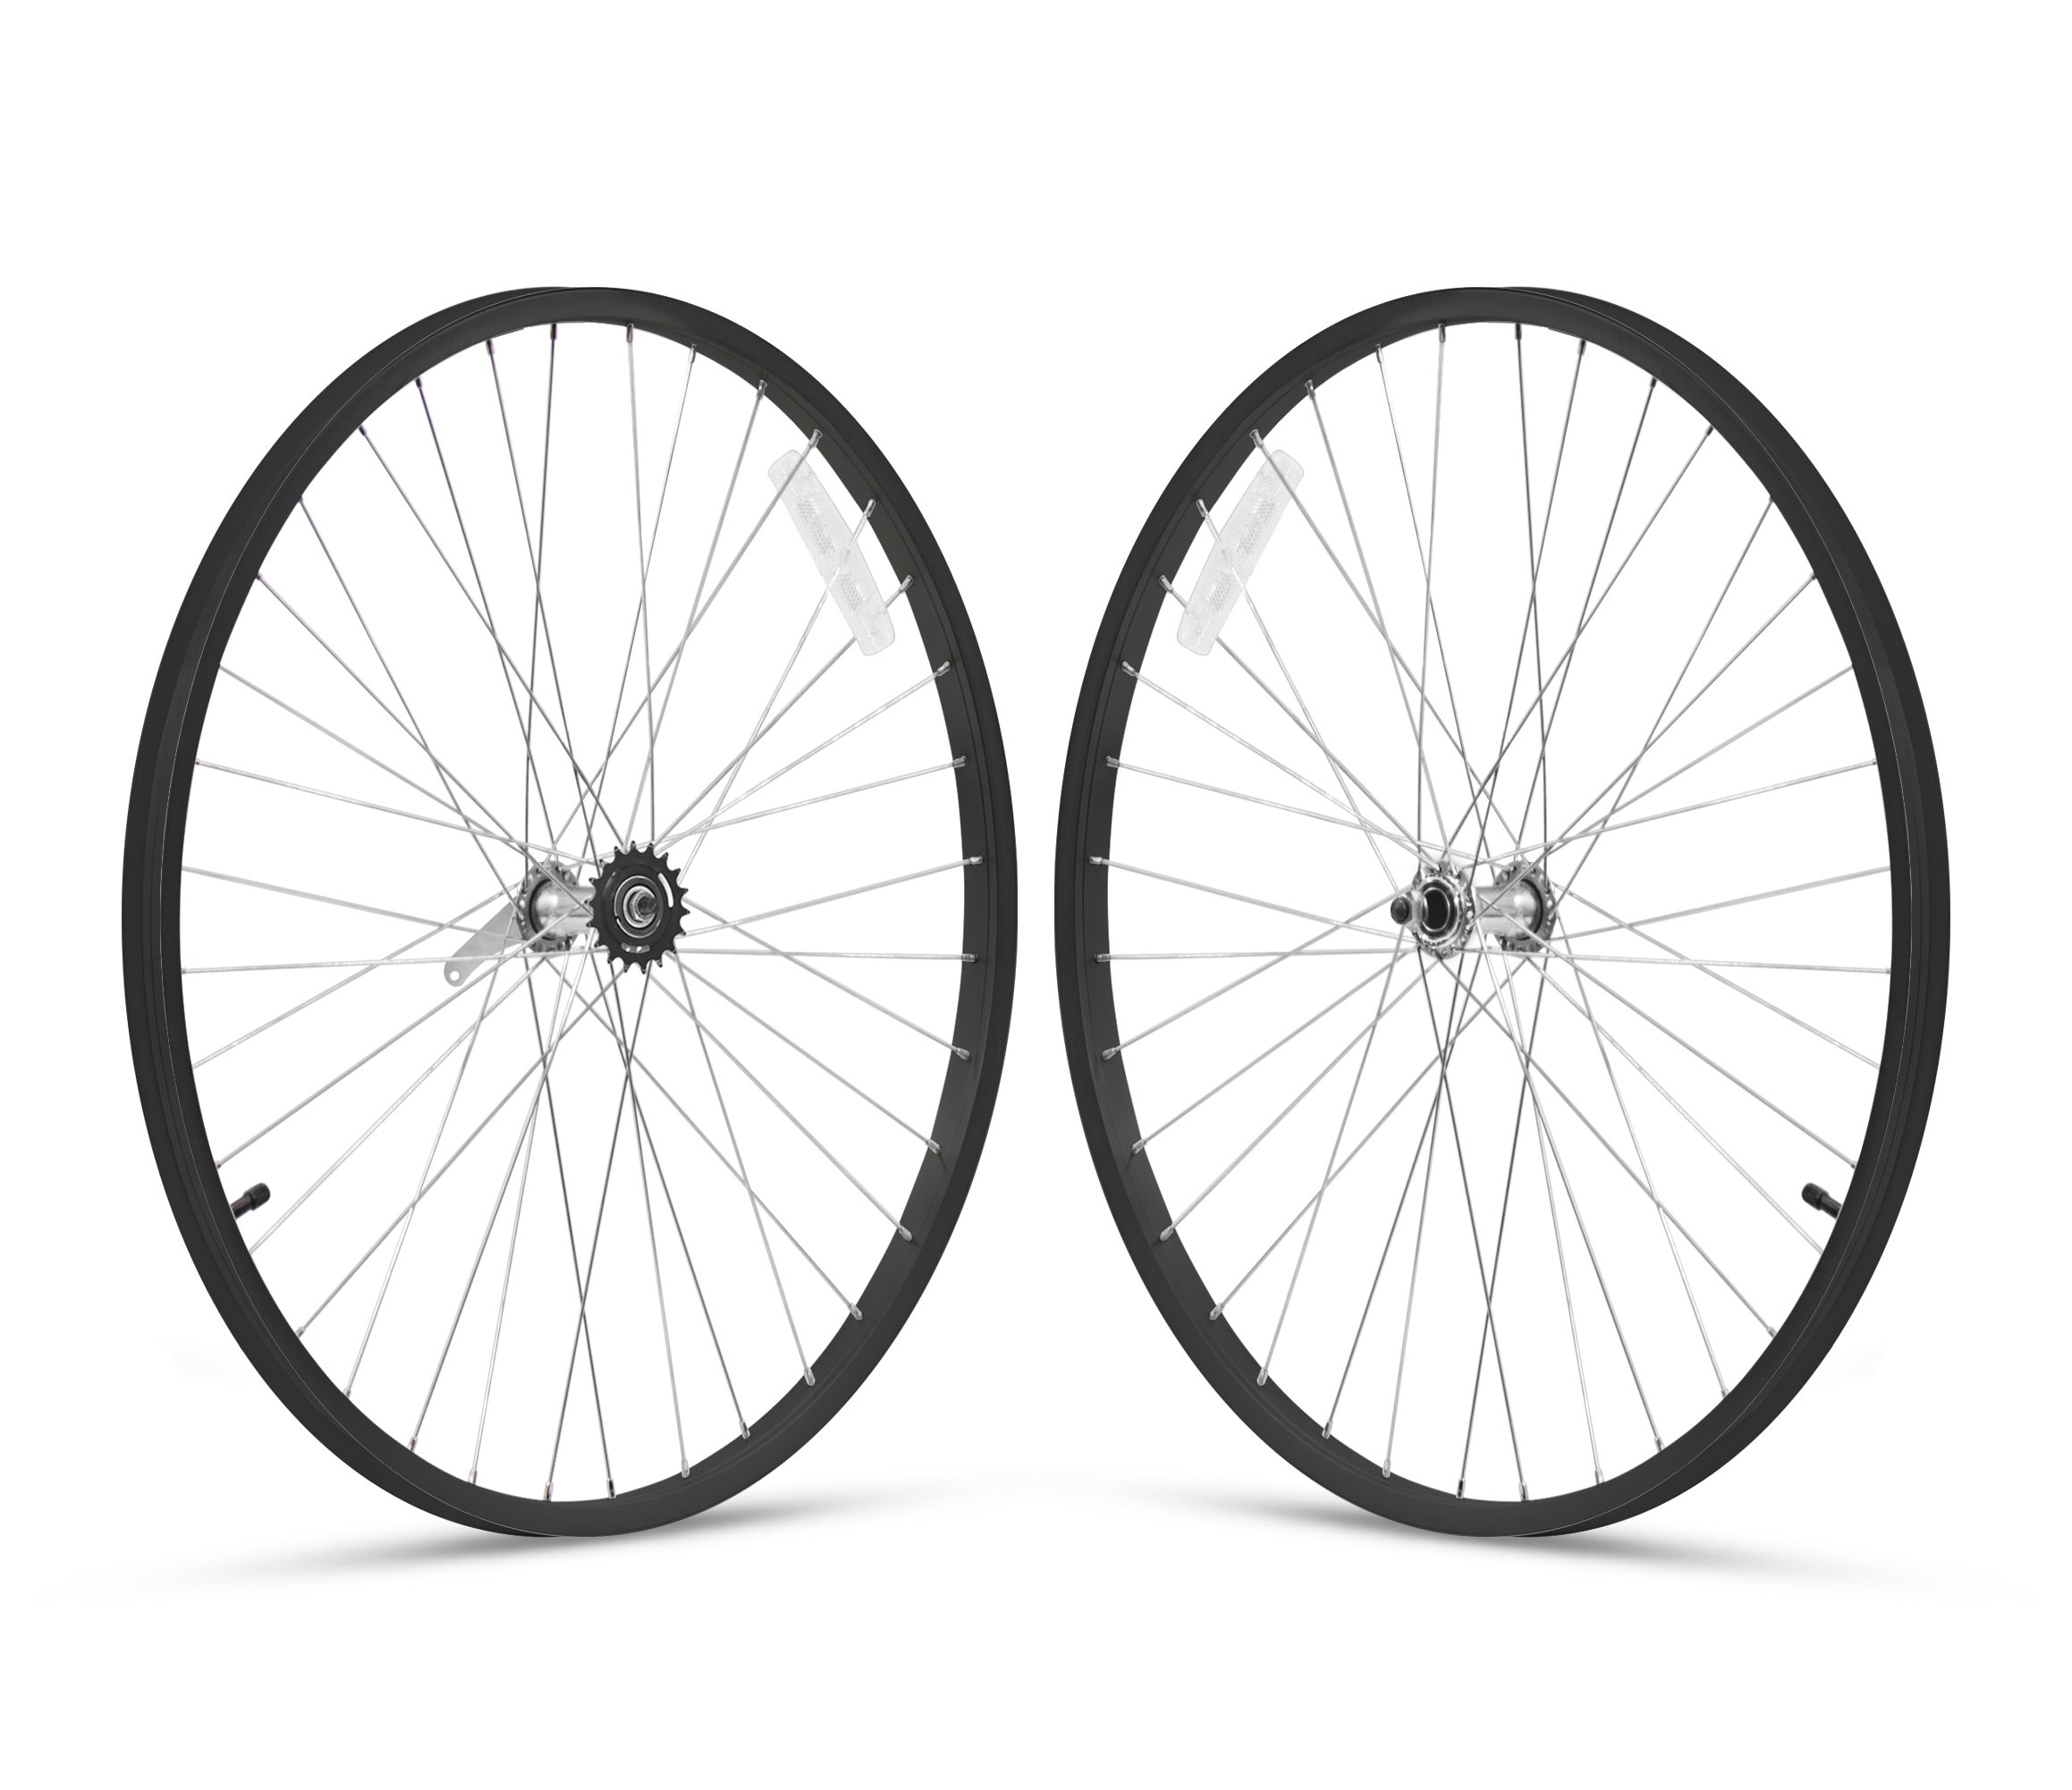 Firmstrong 1-Speed Beach Cruiser Bicycle Wheelset, Front/Rear, Black, 26''